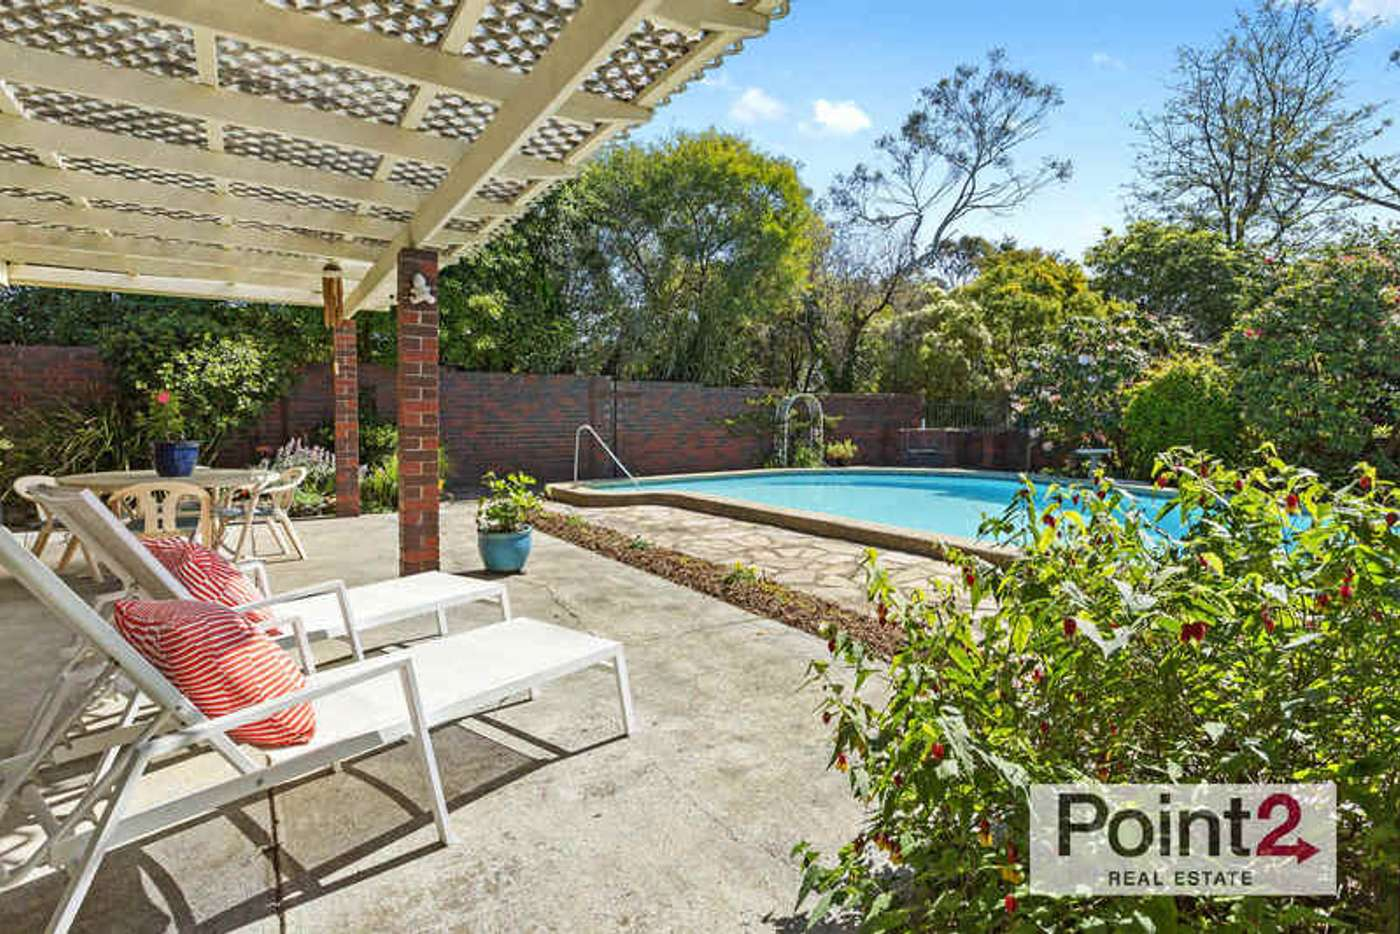 Main view of Homely house listing, 106 Mather Road, Mount Eliza VIC 3930